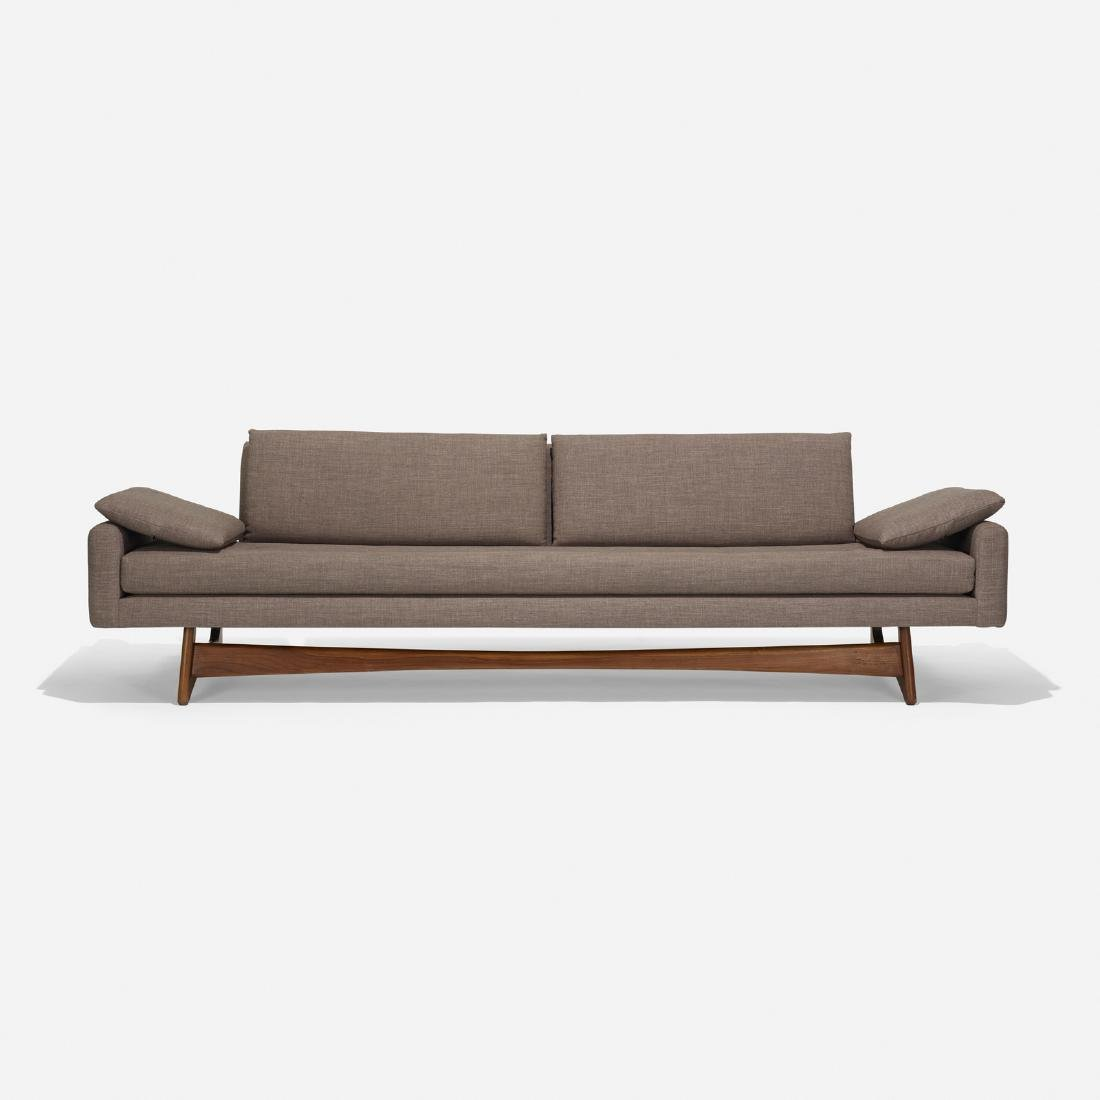 Adrian Pearsall, sofa